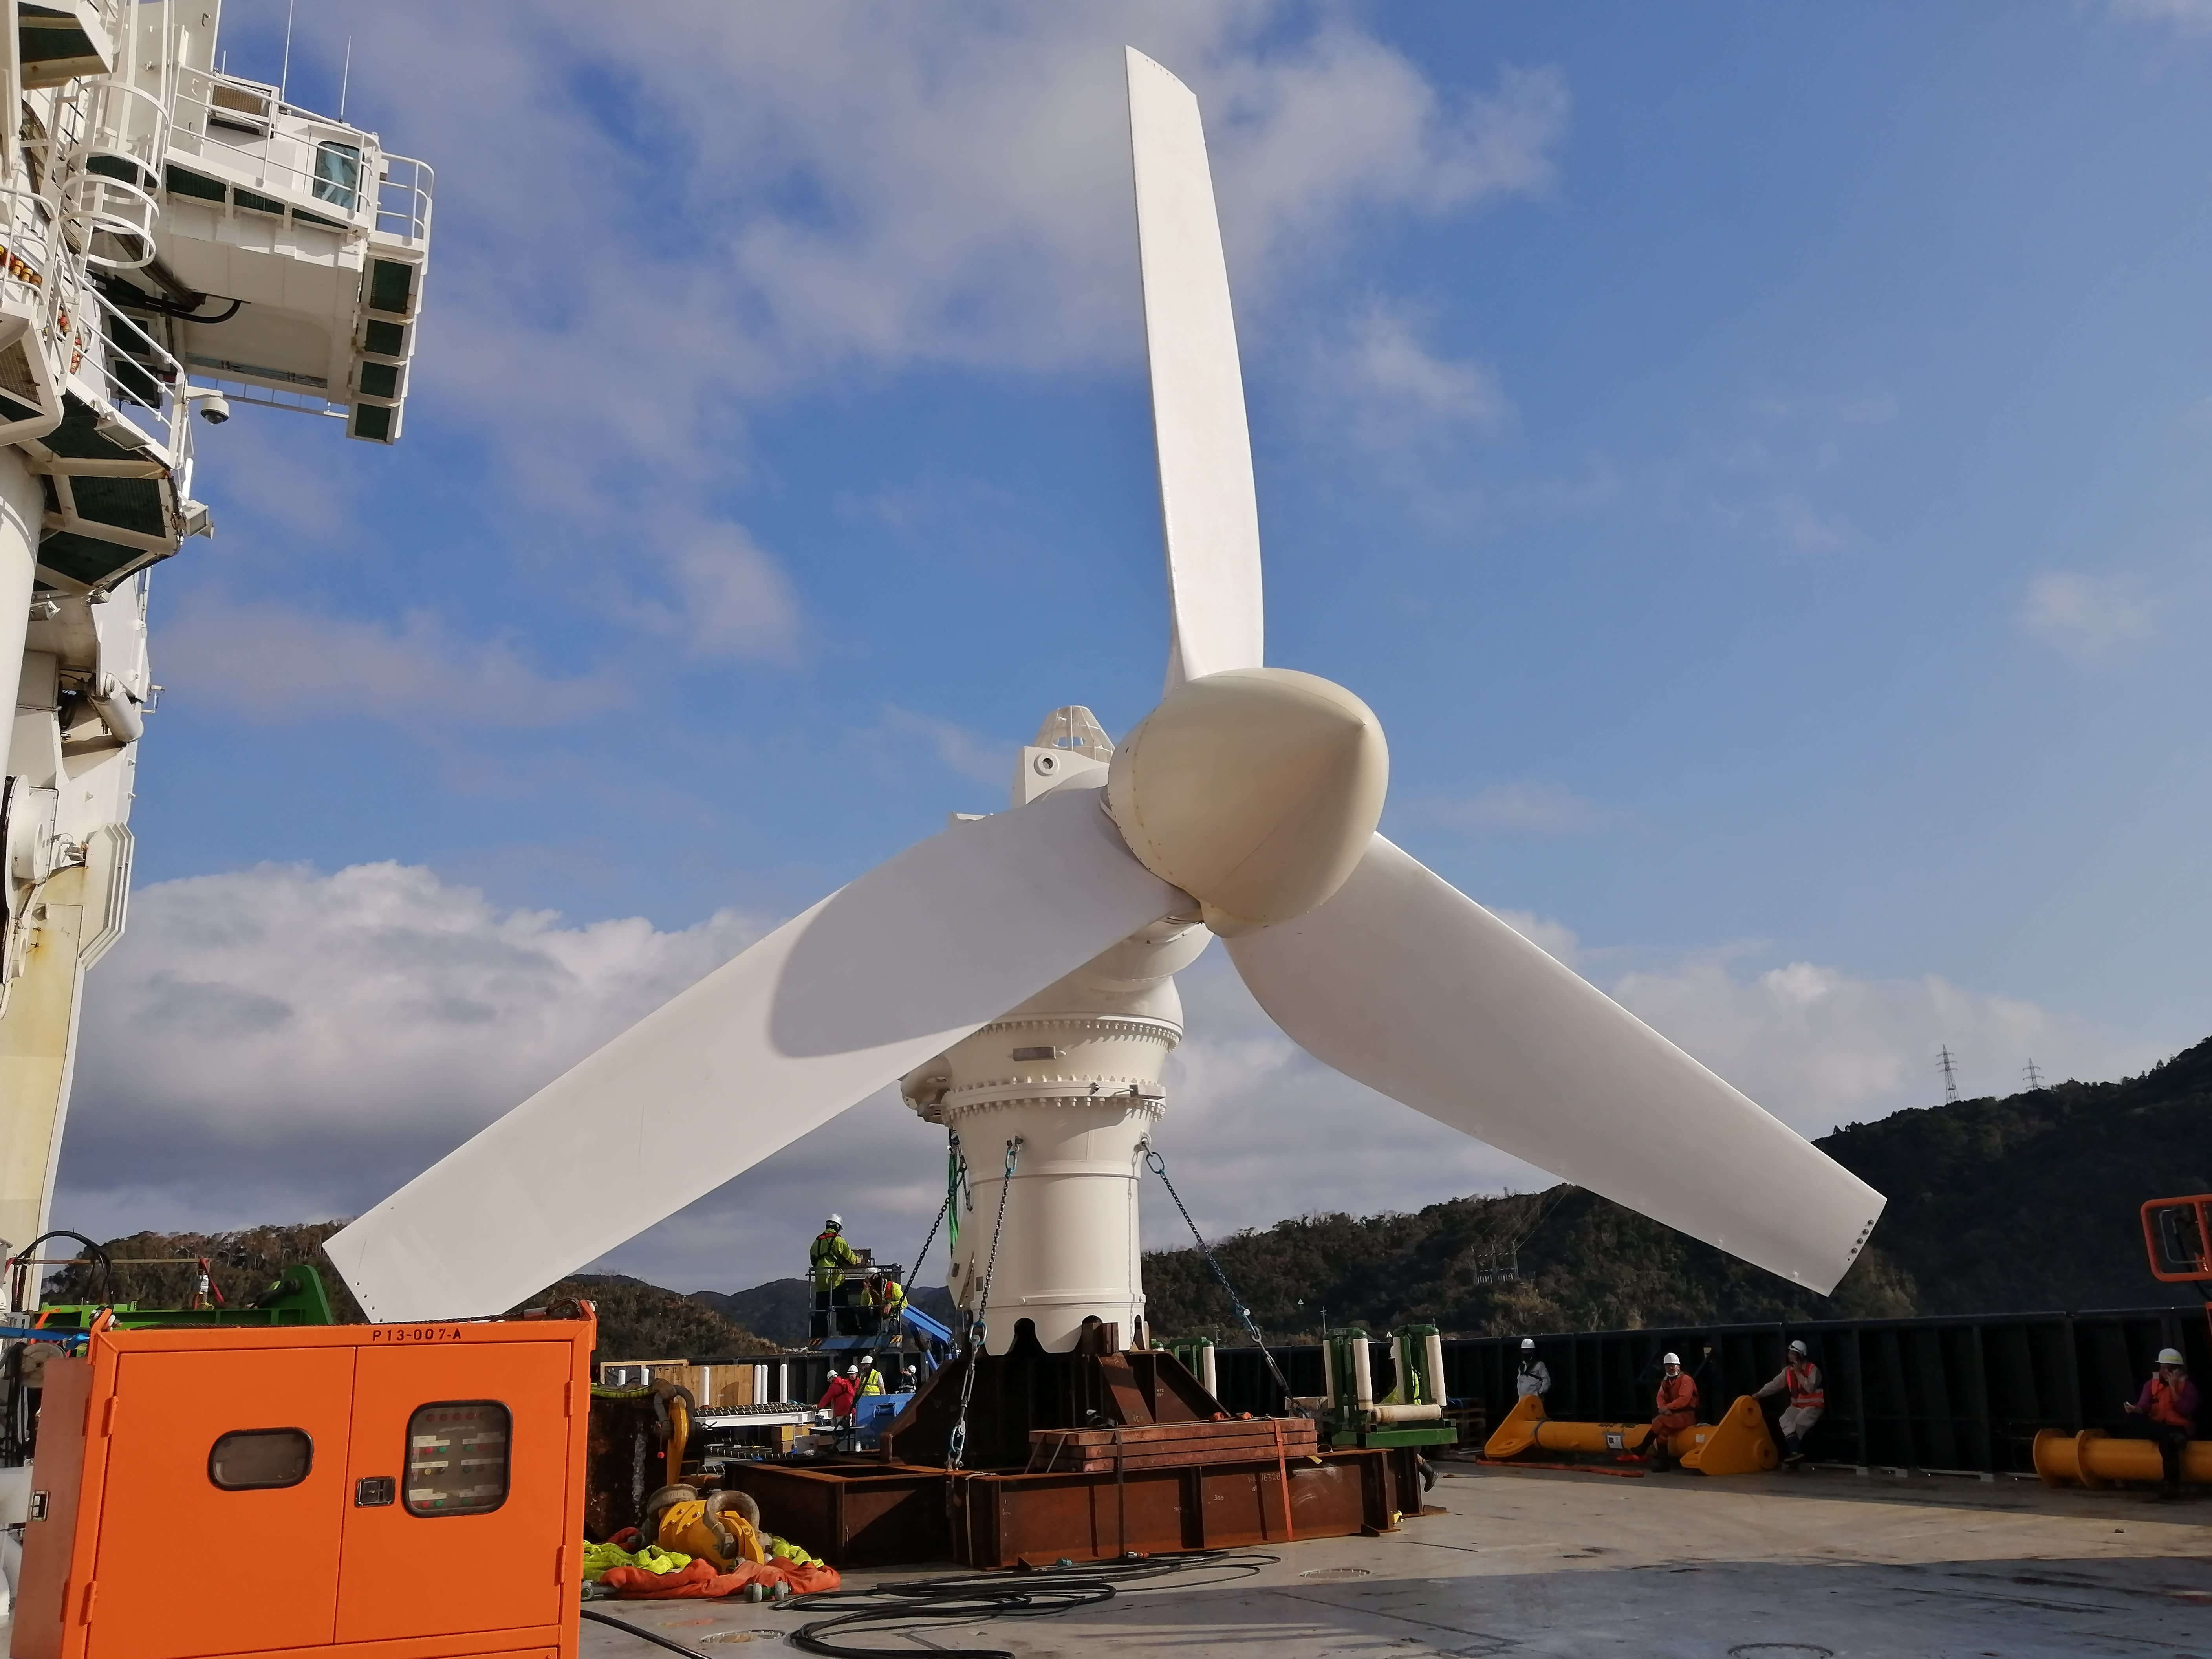 A tidal turbine built in Scotland is now producing power in Japan